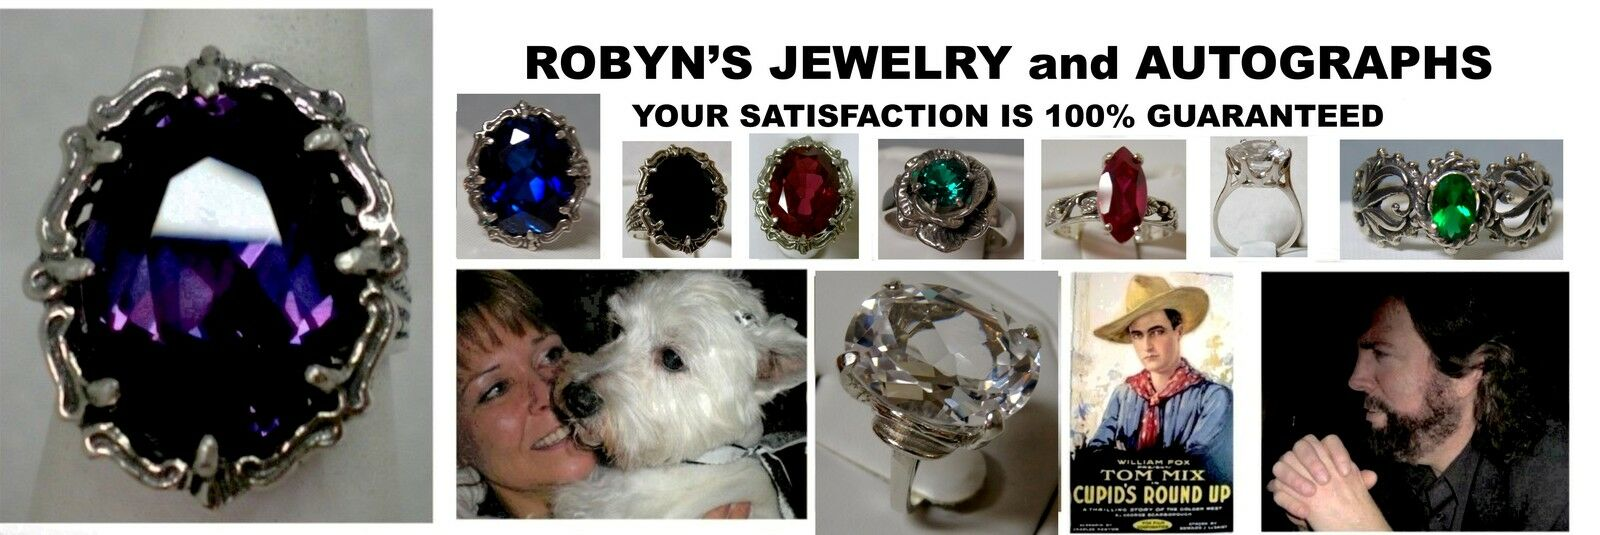 ROBYN S JEWELRY and AUTOGRAPHS